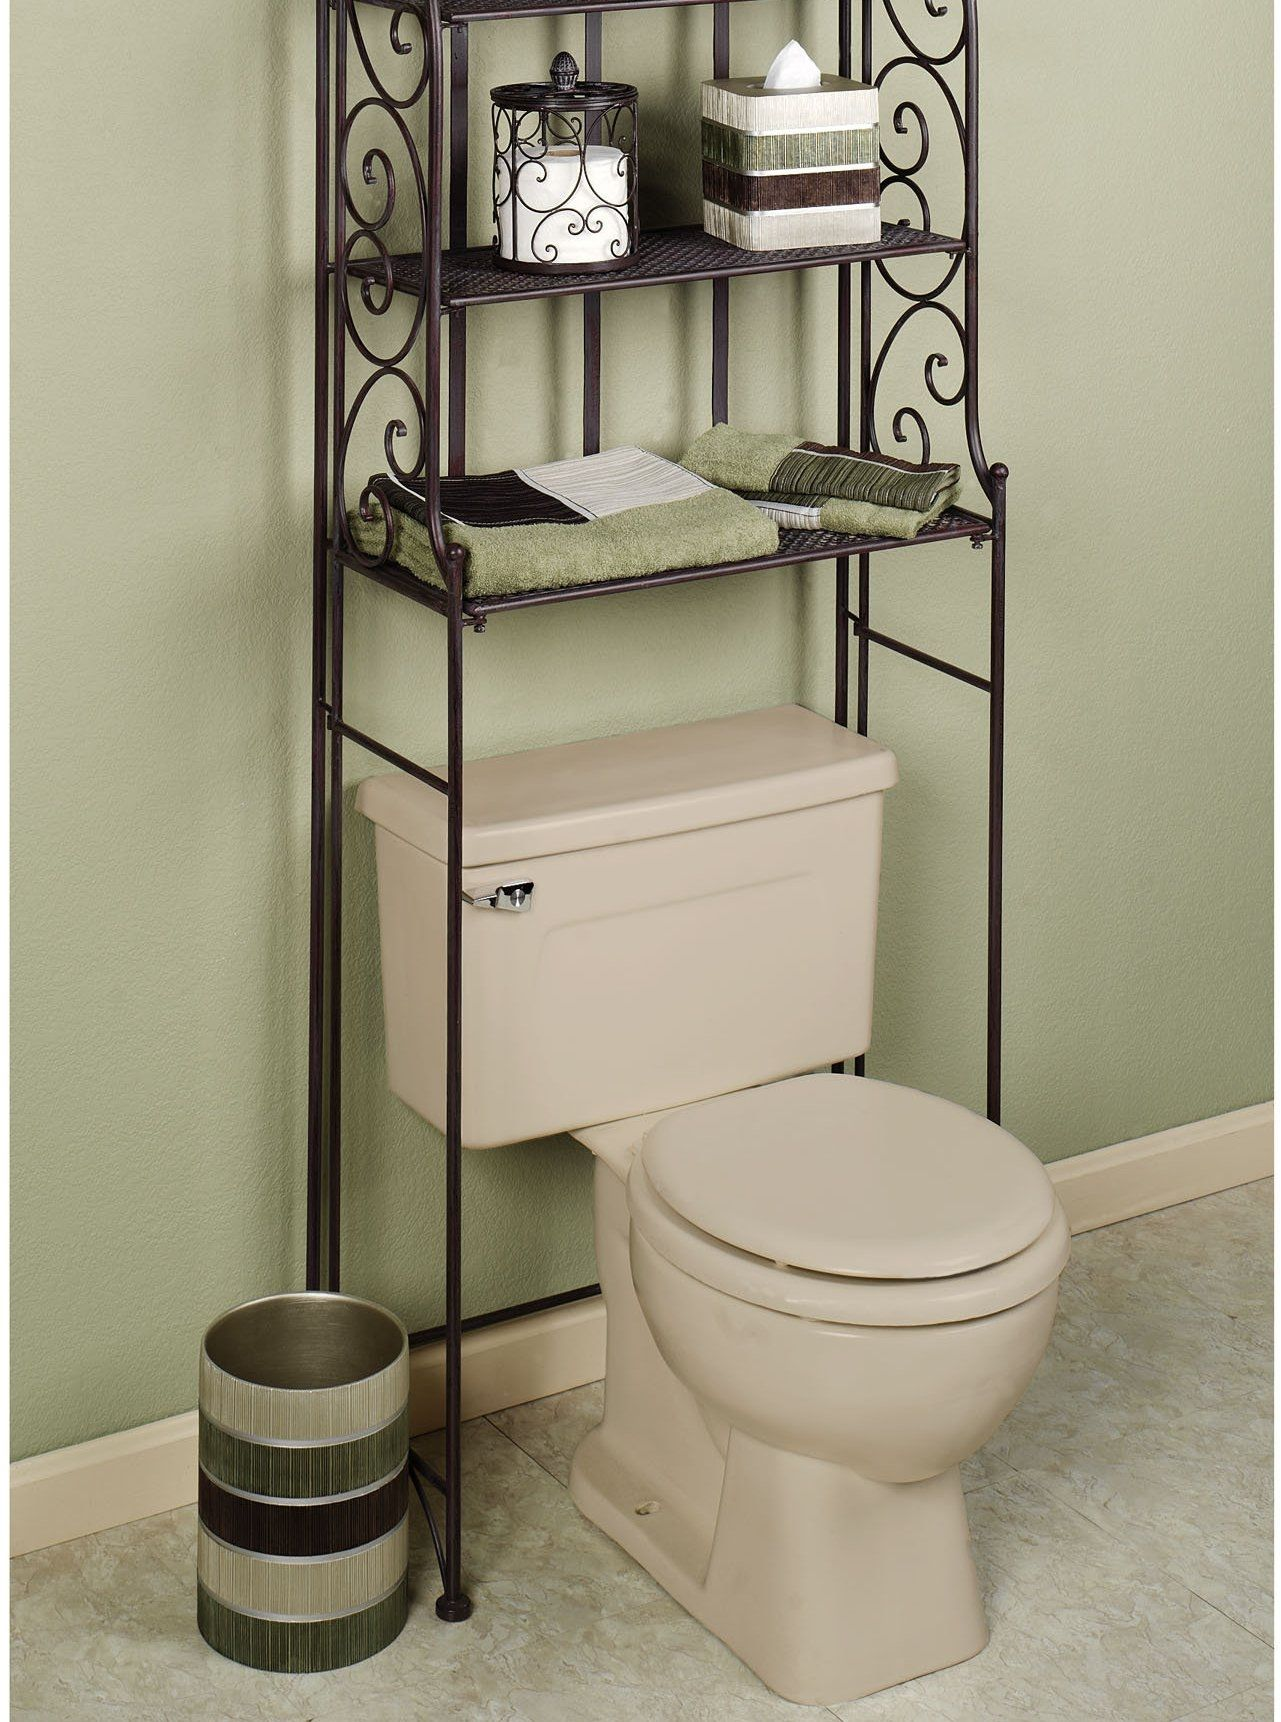 Allen And Roth Bathroom Accessoriesbathroom 58 Inch Bathroom Vanity  Bathroom Shower Pans Allen And